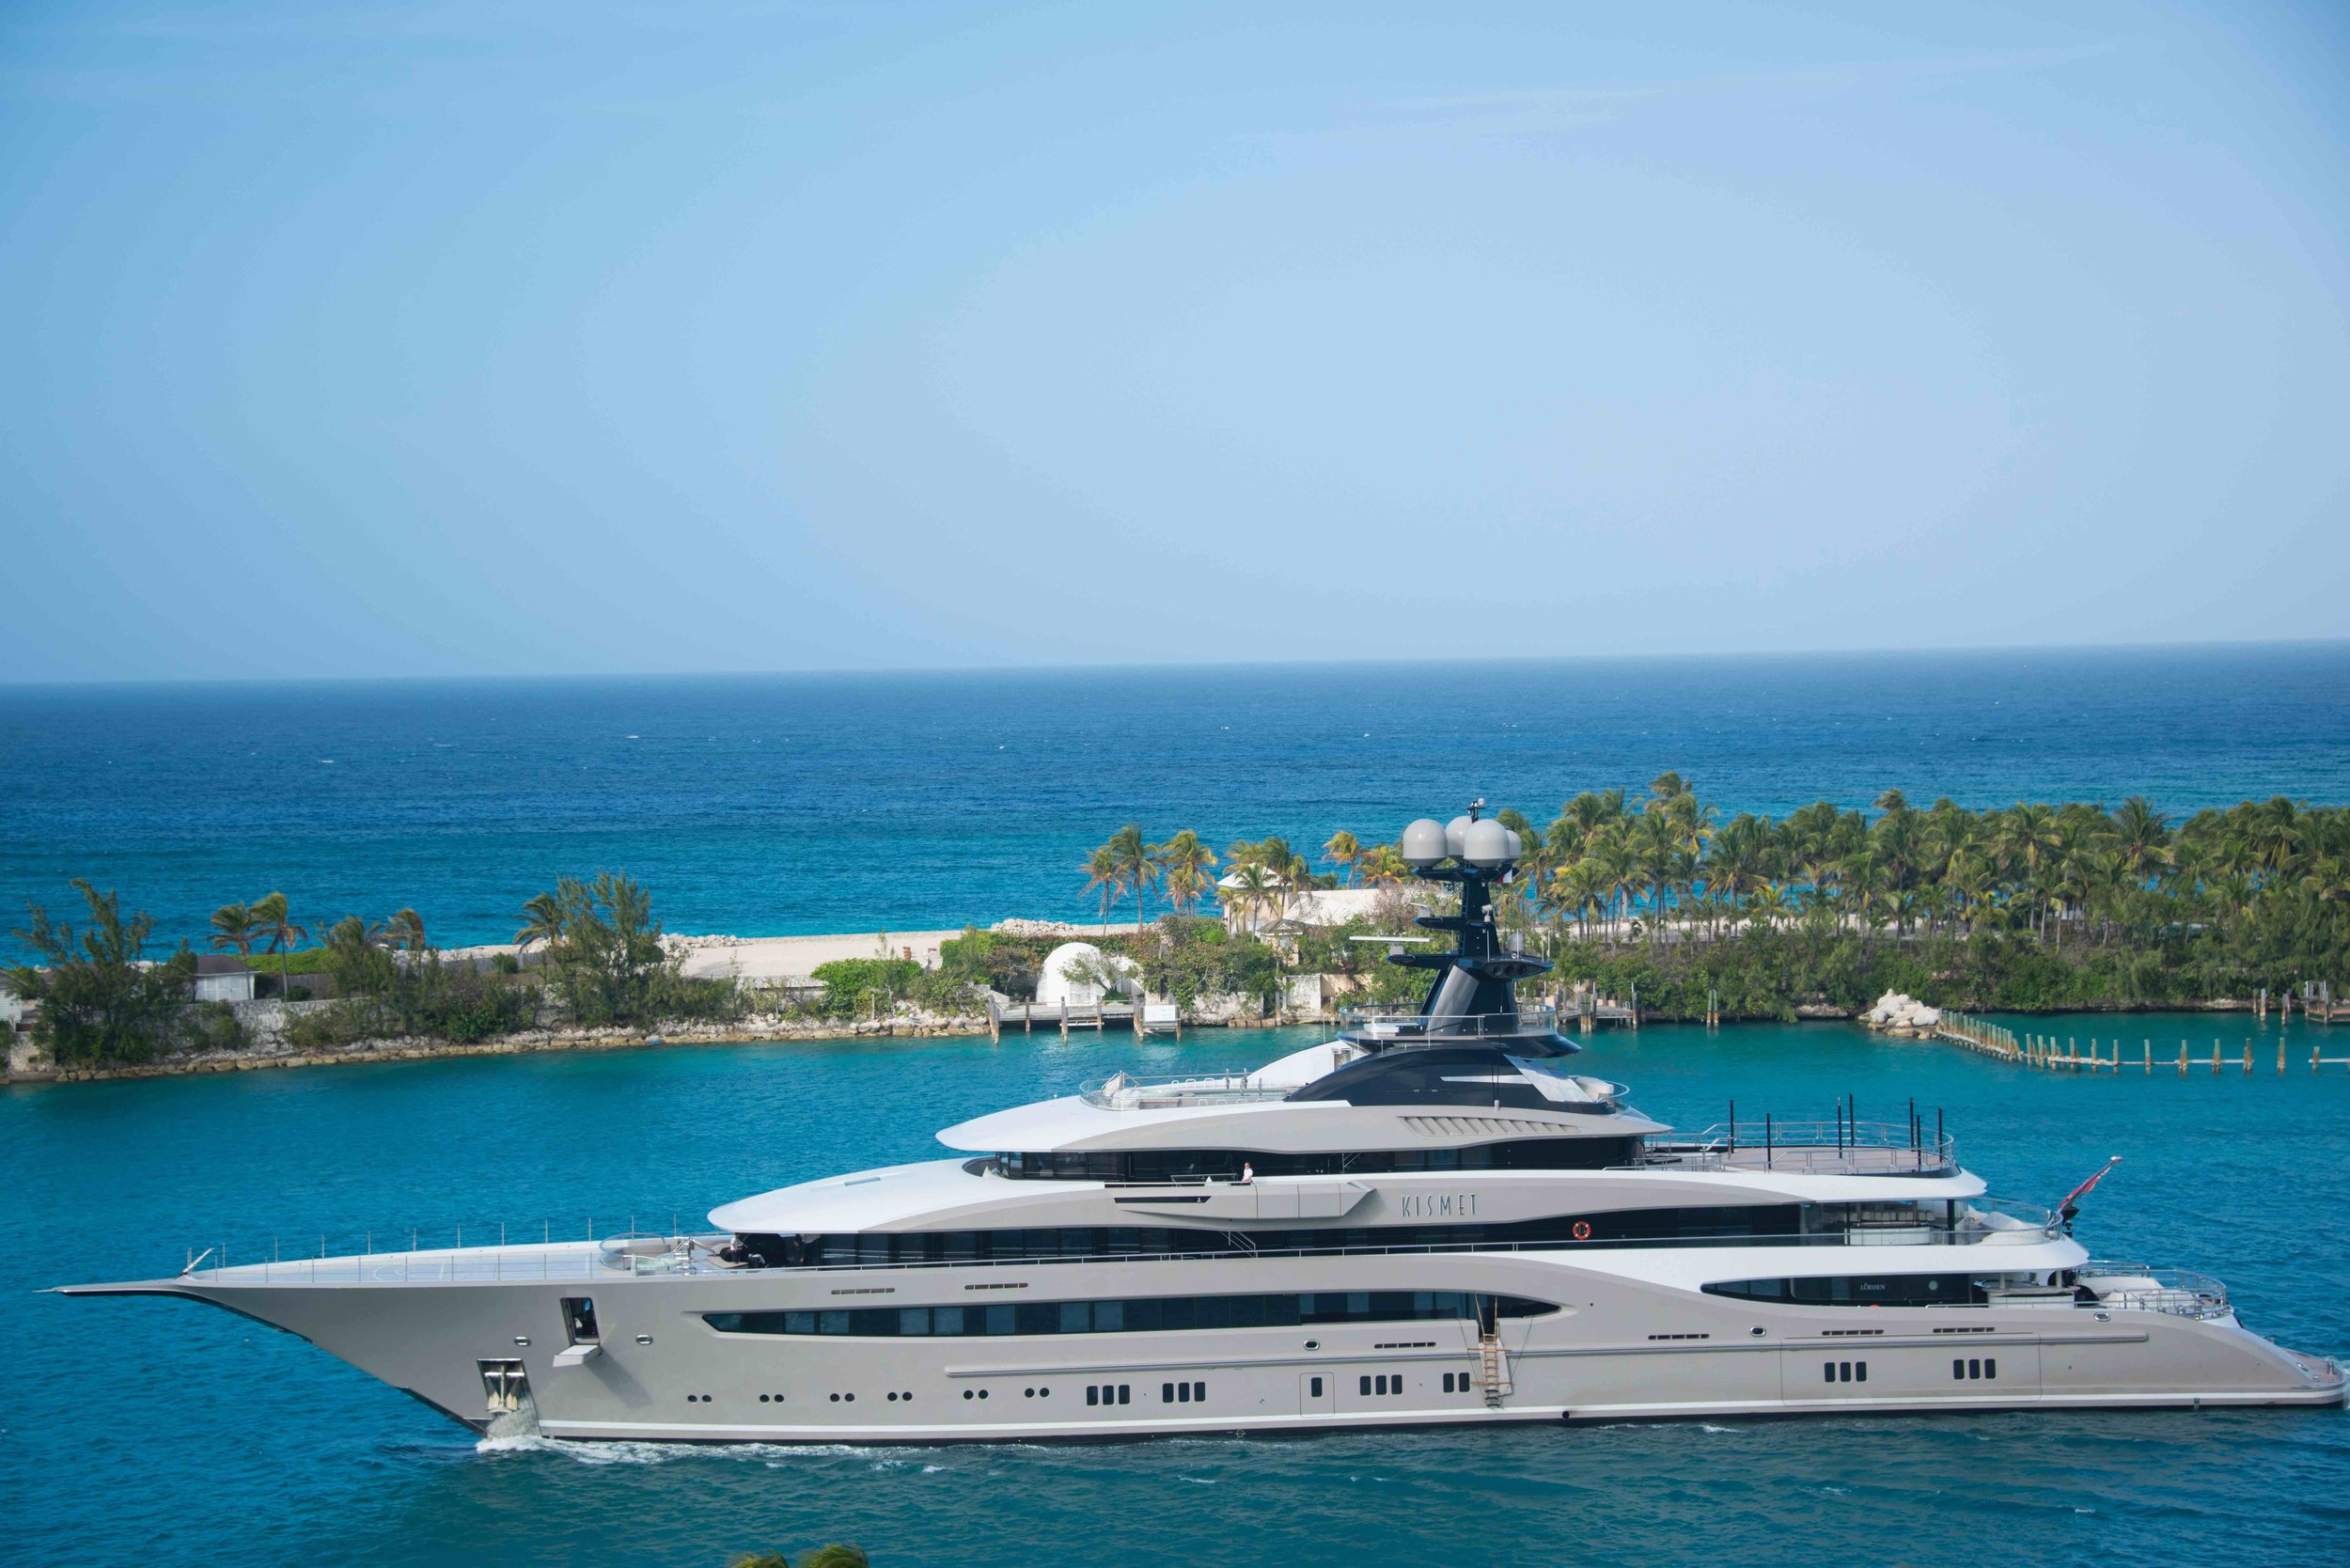 A Superyacht with a helicopter on the fore deck, a classic example of the need for risk assessment and contingency planning